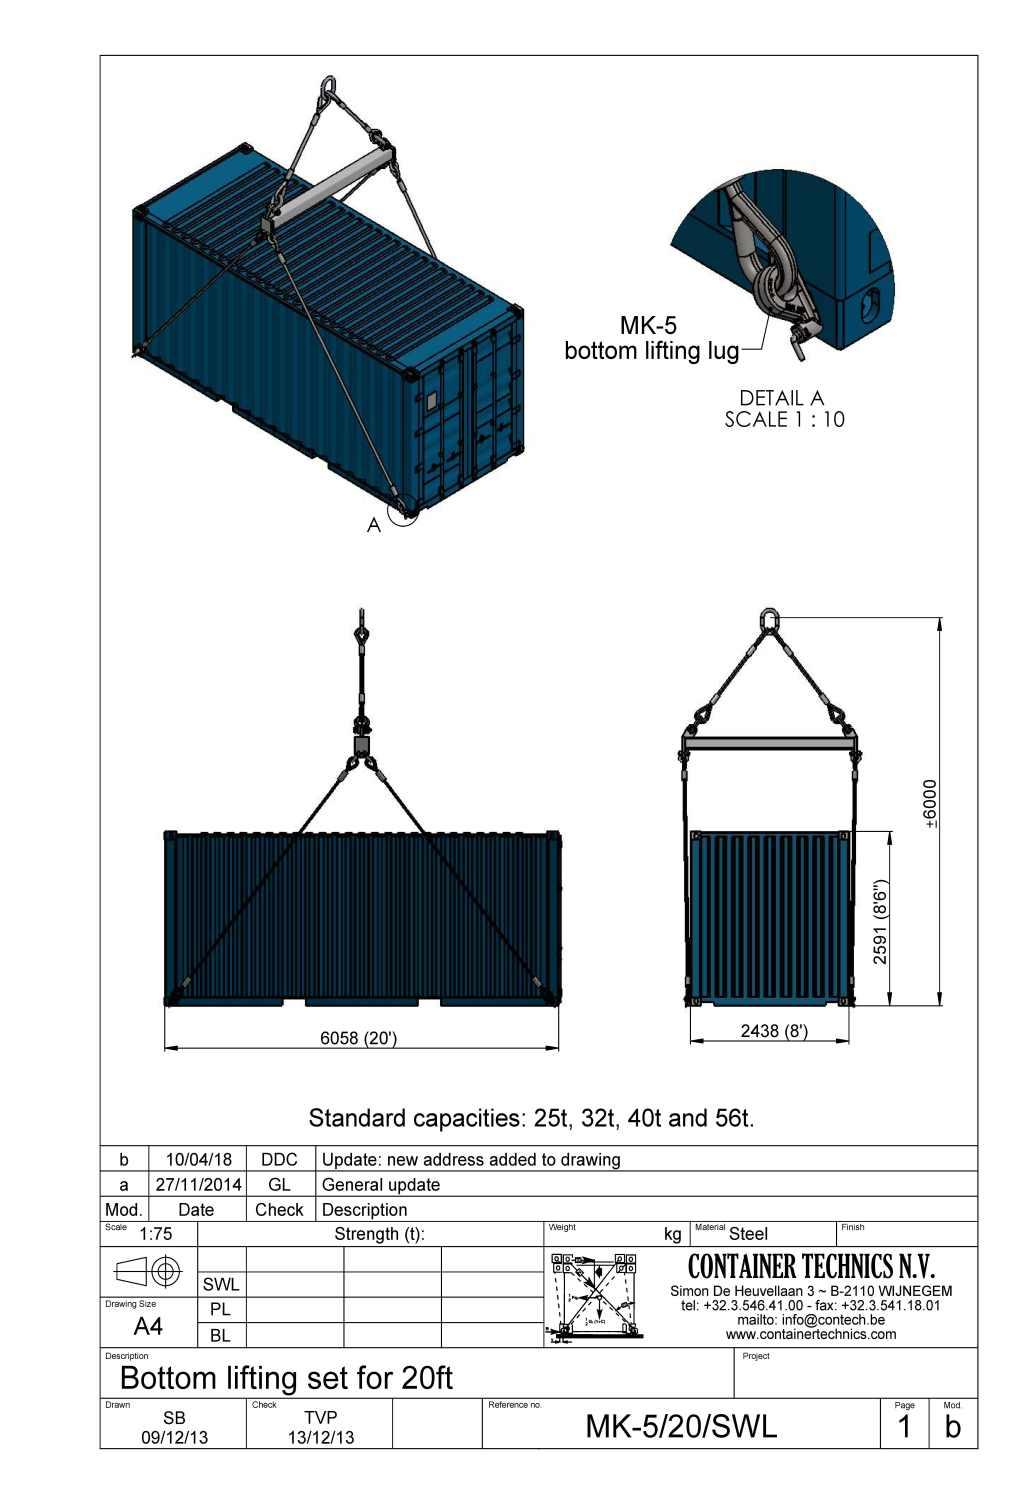 MK-5/20 BOTTOM LIFTING GEAR FOR 20' CONTAINERS